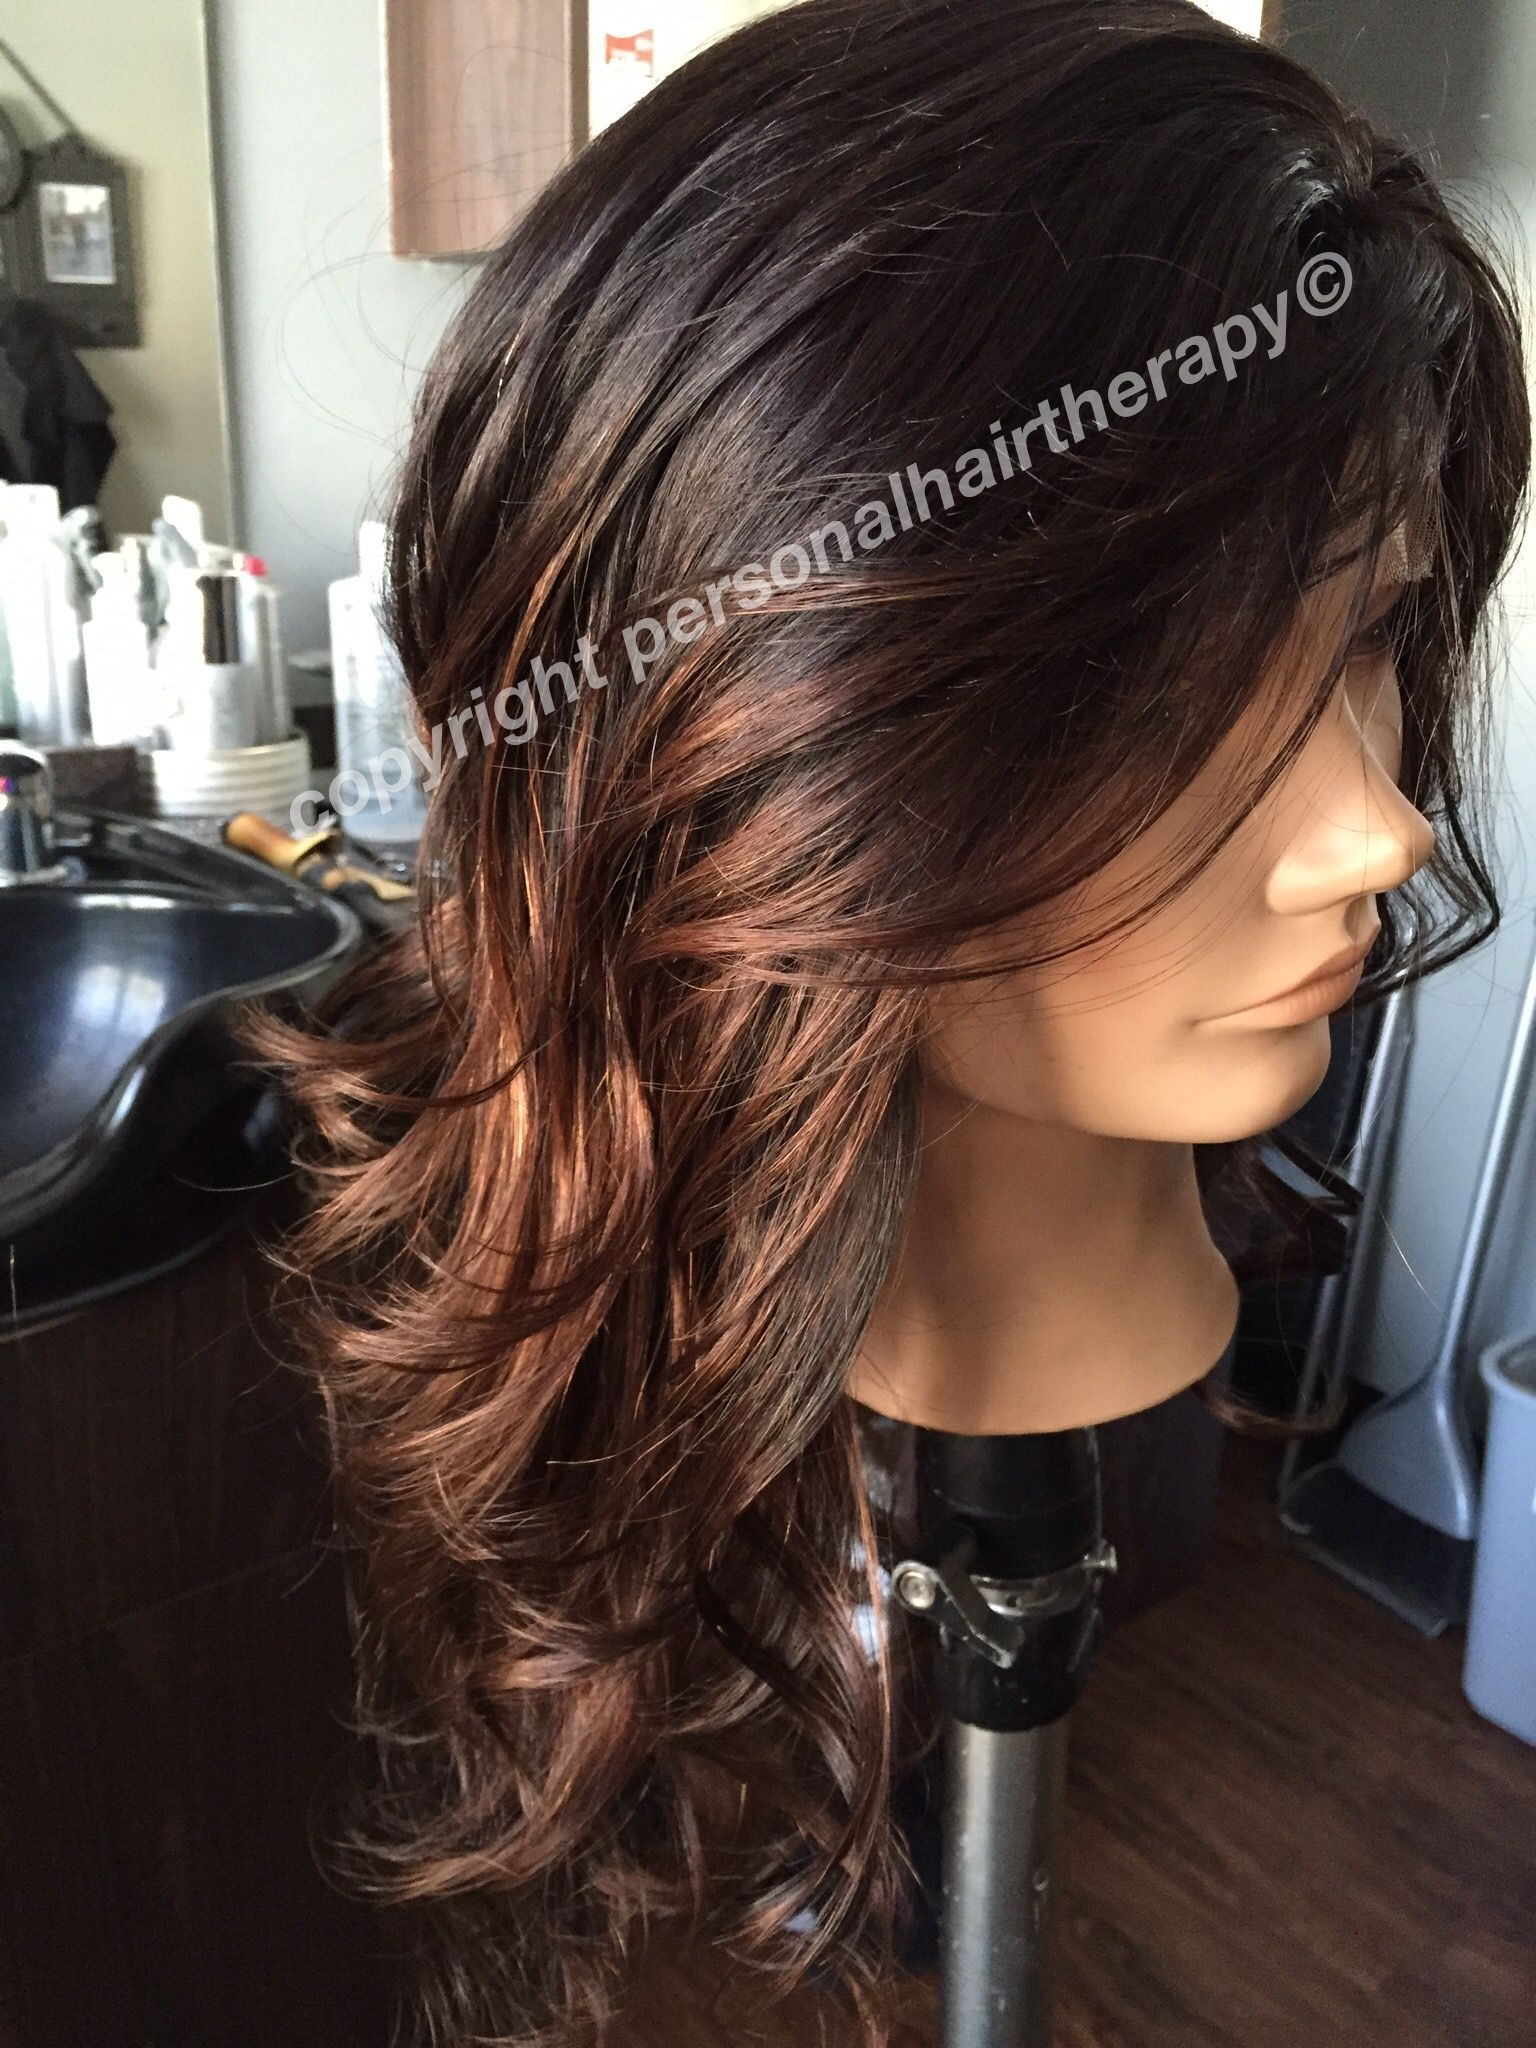 natural looking thinning hair solutions. wigs, hair pieces